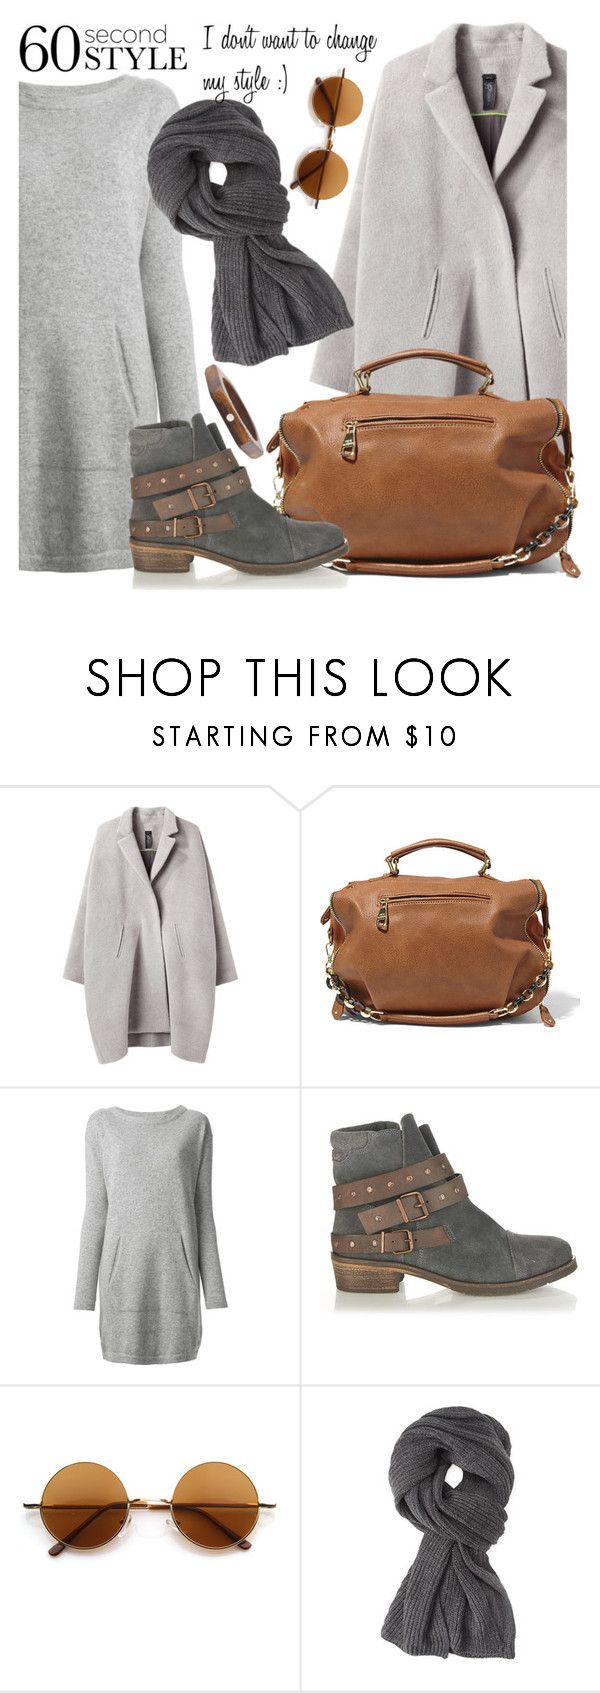 """""""don'tchangeyourstyle-60 Second Challenge: Meet the Parents"""" by bynoor ❤ liked on Polyvore featuring Zero + Maria Cornejo, Steve Madden, Woolrich, Retrò, Forever 21 and Marc by Marc Jacobs"""